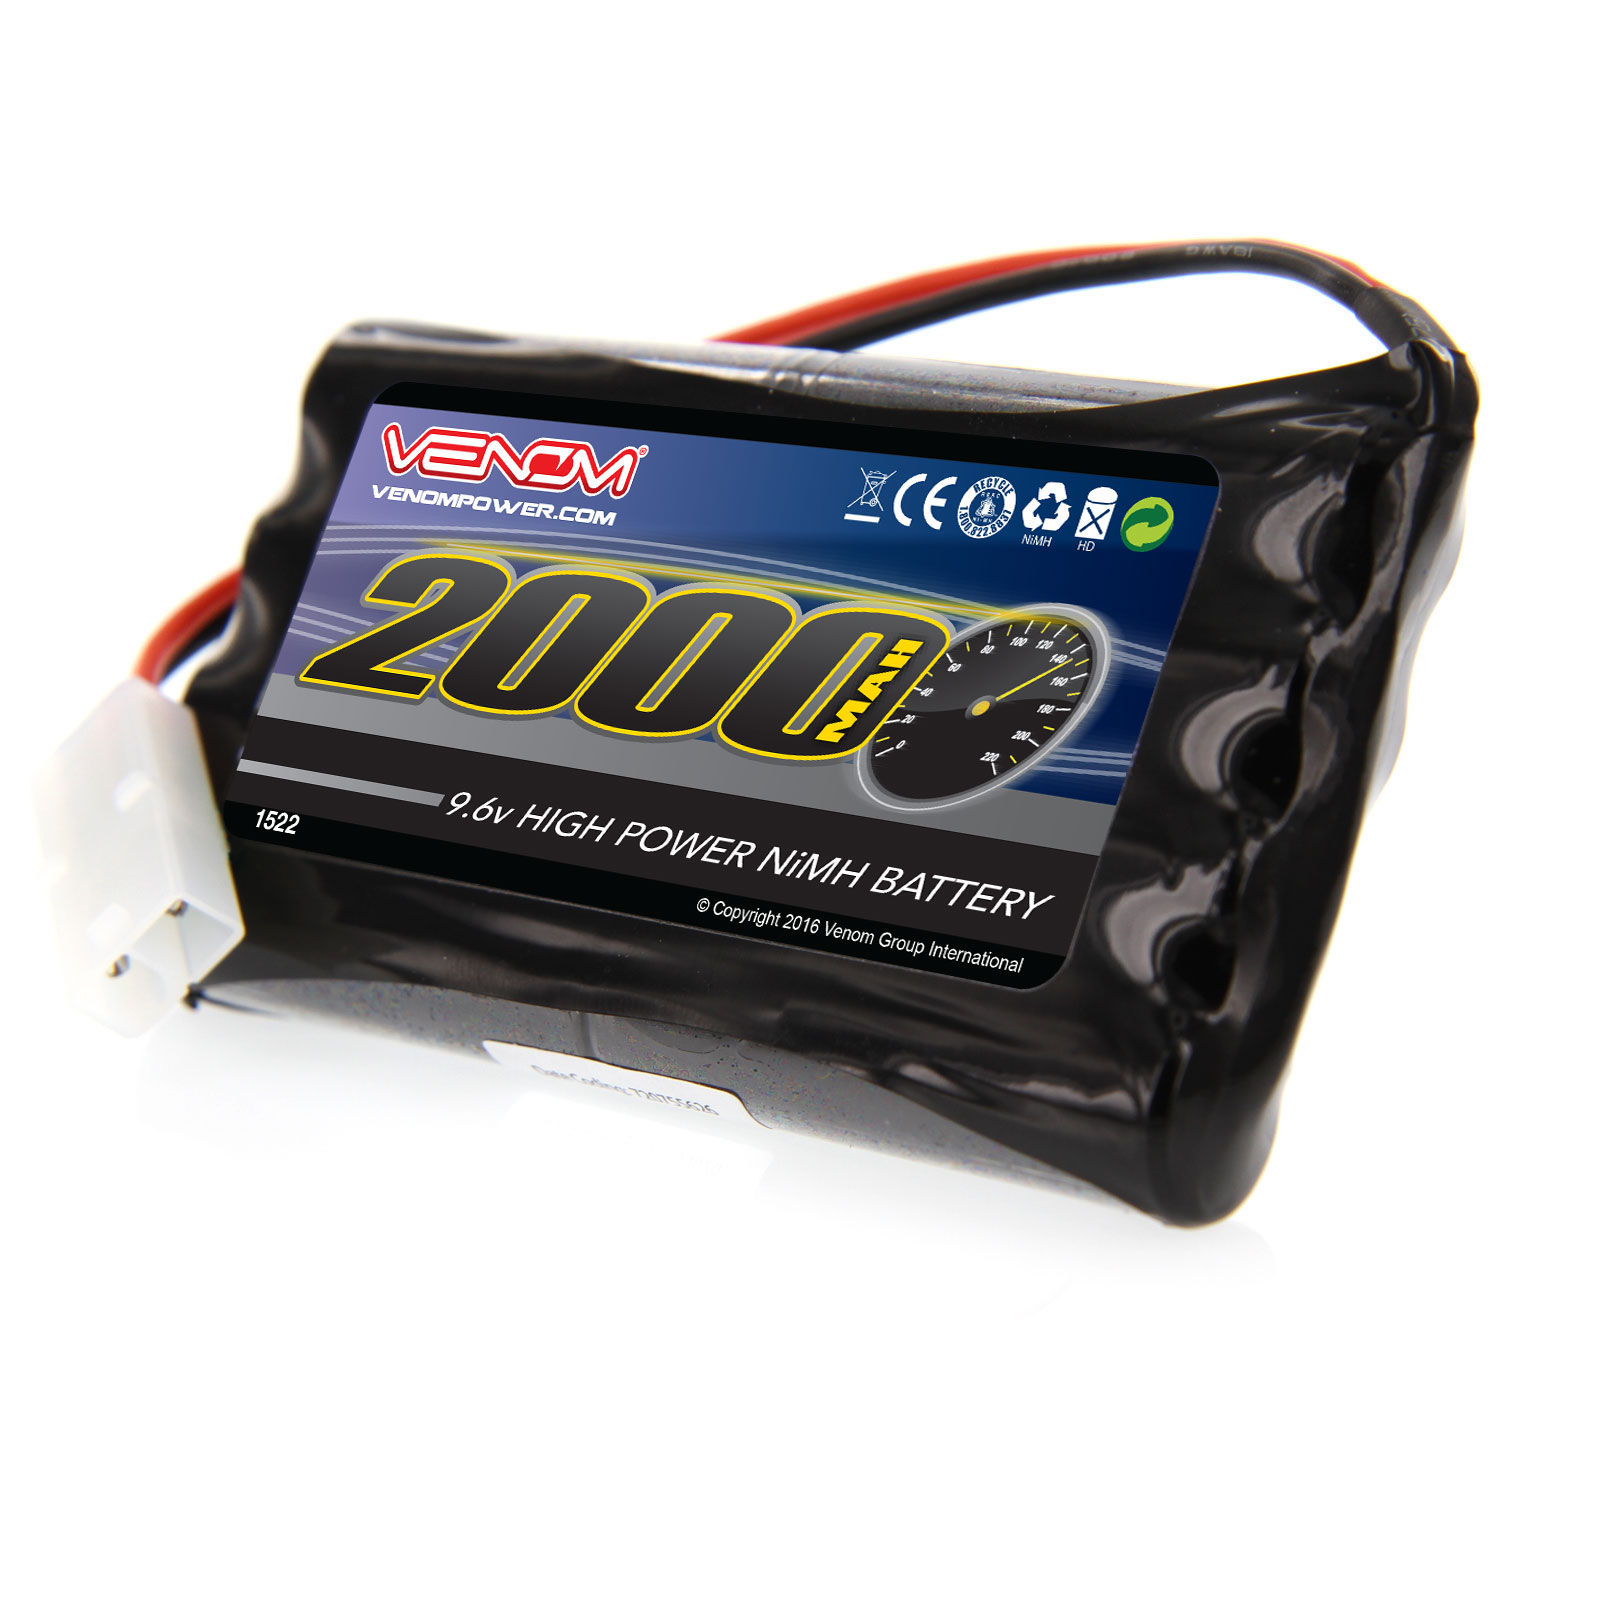 Venom 9.6V 2000mAh 8-Cell NiMH Battery for Nikko, Megatech, New Bright, Maisto, Maya, Jada, and other 9.6V Toy RC Cars